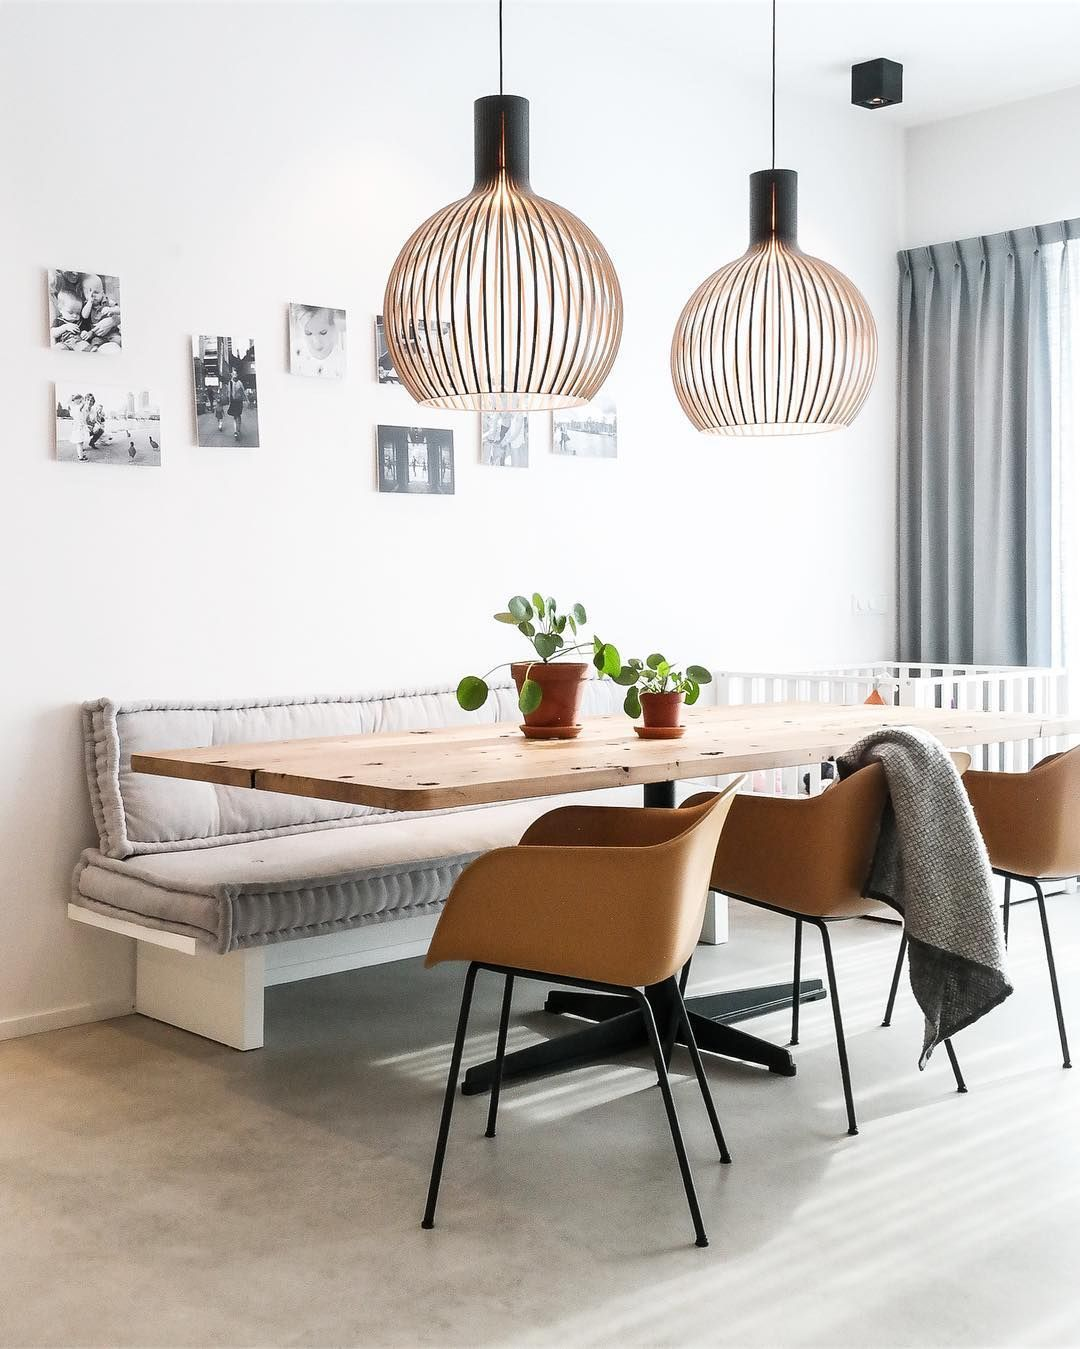 Scandinavian Kitchens Find Your Style Here: What's Hot On Pinterest: Why Scandinavian & Pastel Decor